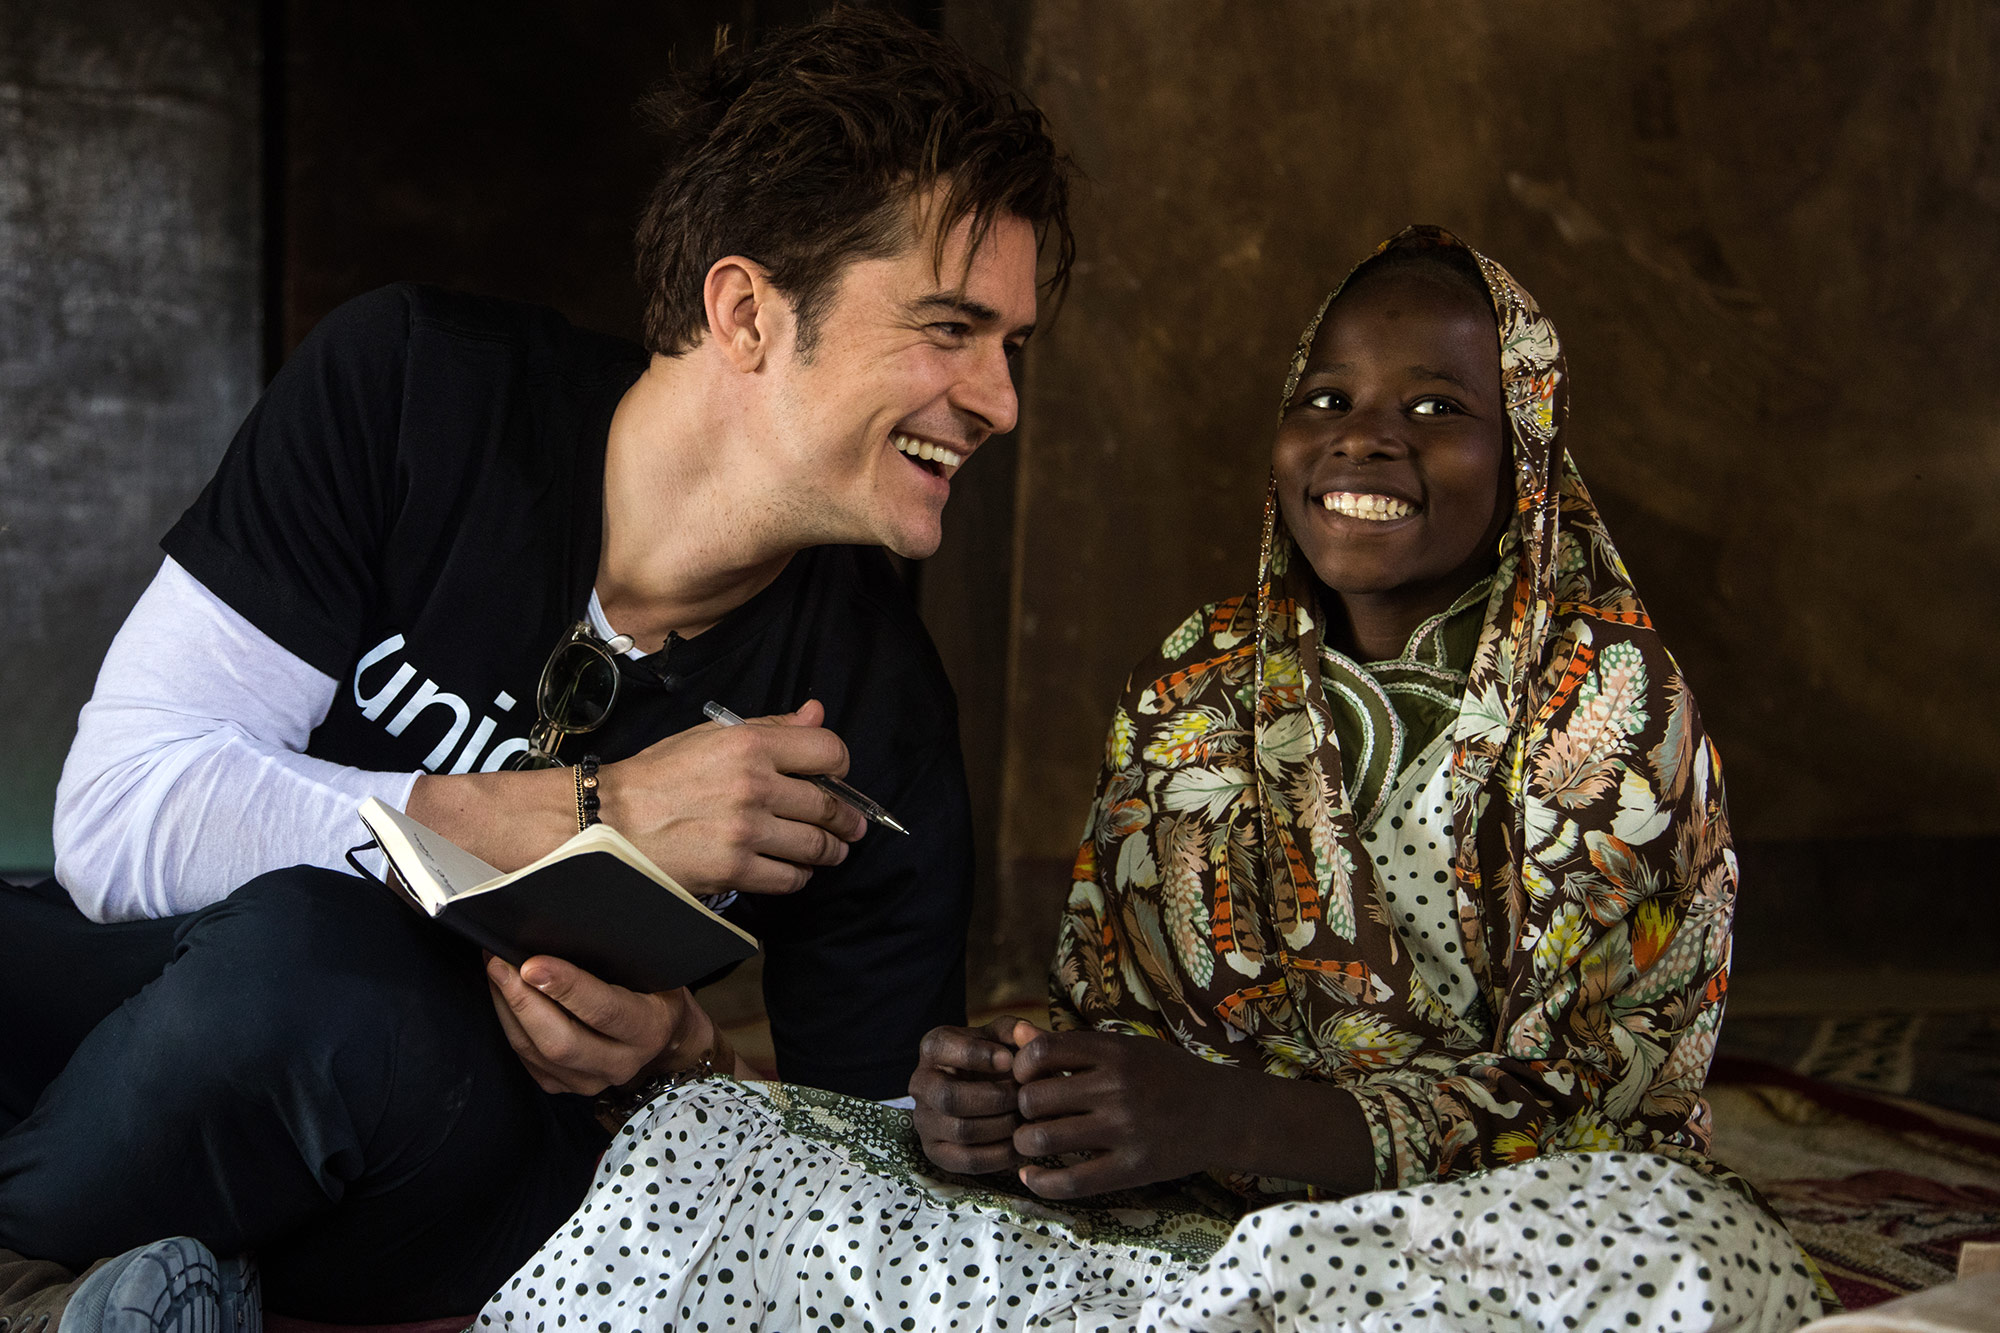 UNICEF Goodwill Ambassador Orlando Bloom (left) smiles as he speaks with twelve-year-old Eta Ibrahim at her family's home, where she lives with her father - the village chief, and her four siblings, in Bosso, Niger, Sunday 19 February 2017. Eta remembers the attacks vividly. It was the 6th of February 2015 around 7AM when she first heard the shootings. Her father and older brother went hiding in the bush while she waited in fear. Around 8AM, Boko Haram forced the door of her home and lined them up in the courtyard, looking for her father and threatening to kill everyone if they didnít give him up. They eventually left with captives. She cried until exhaustion and fled by foot with her family the next day to YÈbi where they had relatives. She remembers the thirst and the hunger of their journey but when she finally received some food, she couldnít eat. She couldnít sleep for months because of the nightmares where she would see Boko Haram coming after her to kill her. She fled to Diffa where she resumed school but she didnít know anyone there and felt lonely. Her mother became ill while they were displaced and eventually died. In October 2016, she finally went back to Bosso where she feels much better. She has resumed her education, starting 7th grade with her friends. She now sleeps better. One day, she dreams of becoming a doctor to help the sick and wounded. In late February 2017, UNICEF Goodwill Ambassador Orlando Bloom travelled to Diffa, south-east Niger, to highlight the ongoing humanitarian crisis in West Africaís Lake Chad Basin (Niger, Nigeria, Chad, Cameroon). Boko Haram violence has caused huge population displacements, leaving hundreds of thousands of children in a critical situation, out of education and at risk of malnutrition. Across the four countries, 2.3 million people are now displaced, making this one of the fastest growing displacement crises in Africa. The Diffa region currently hosts over 240,000 internally displaced people, refug